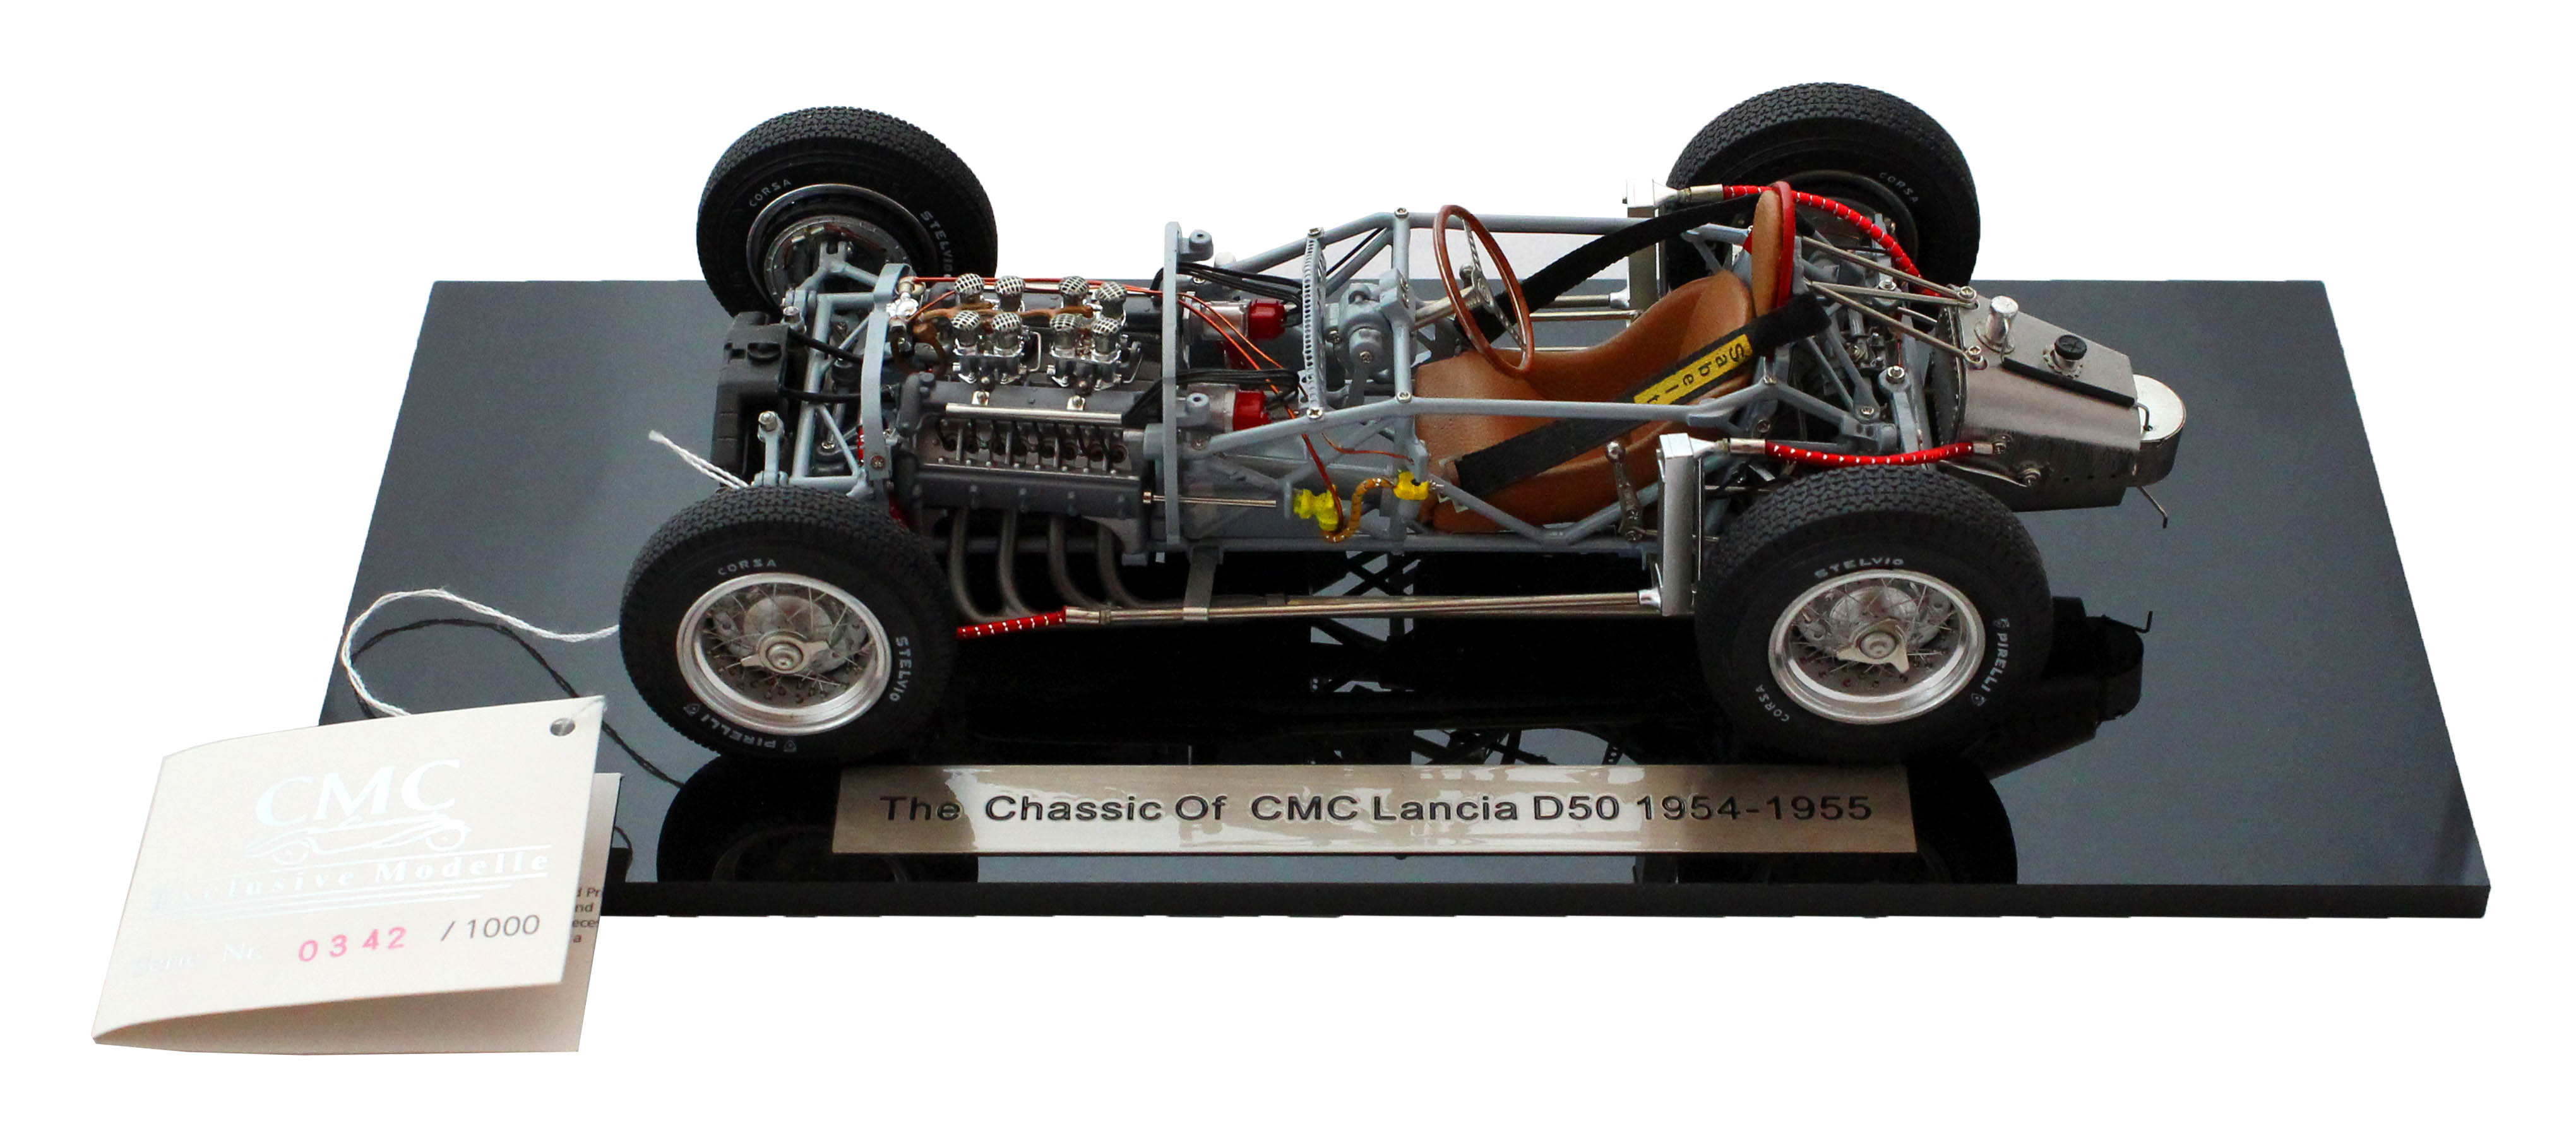 Chassis of CMC Lancia D50 1954-1955